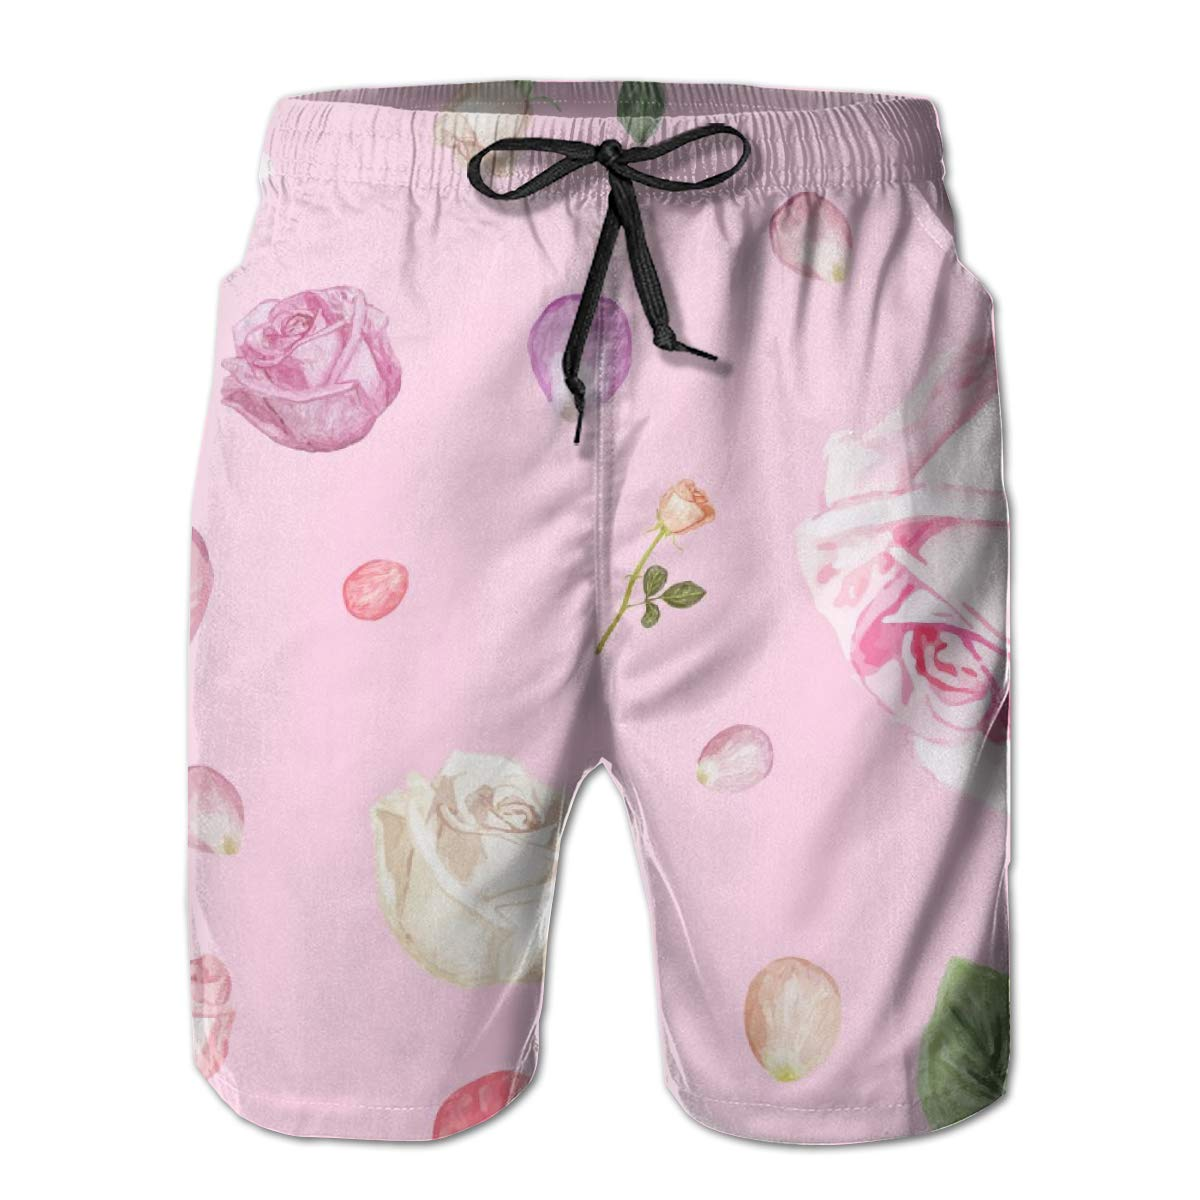 Leisue Pink Rose Quick Dry Elastic Lace Boardshorts Beach Shorts Pants Swim Trunks Mens Swimsuit with Pockets